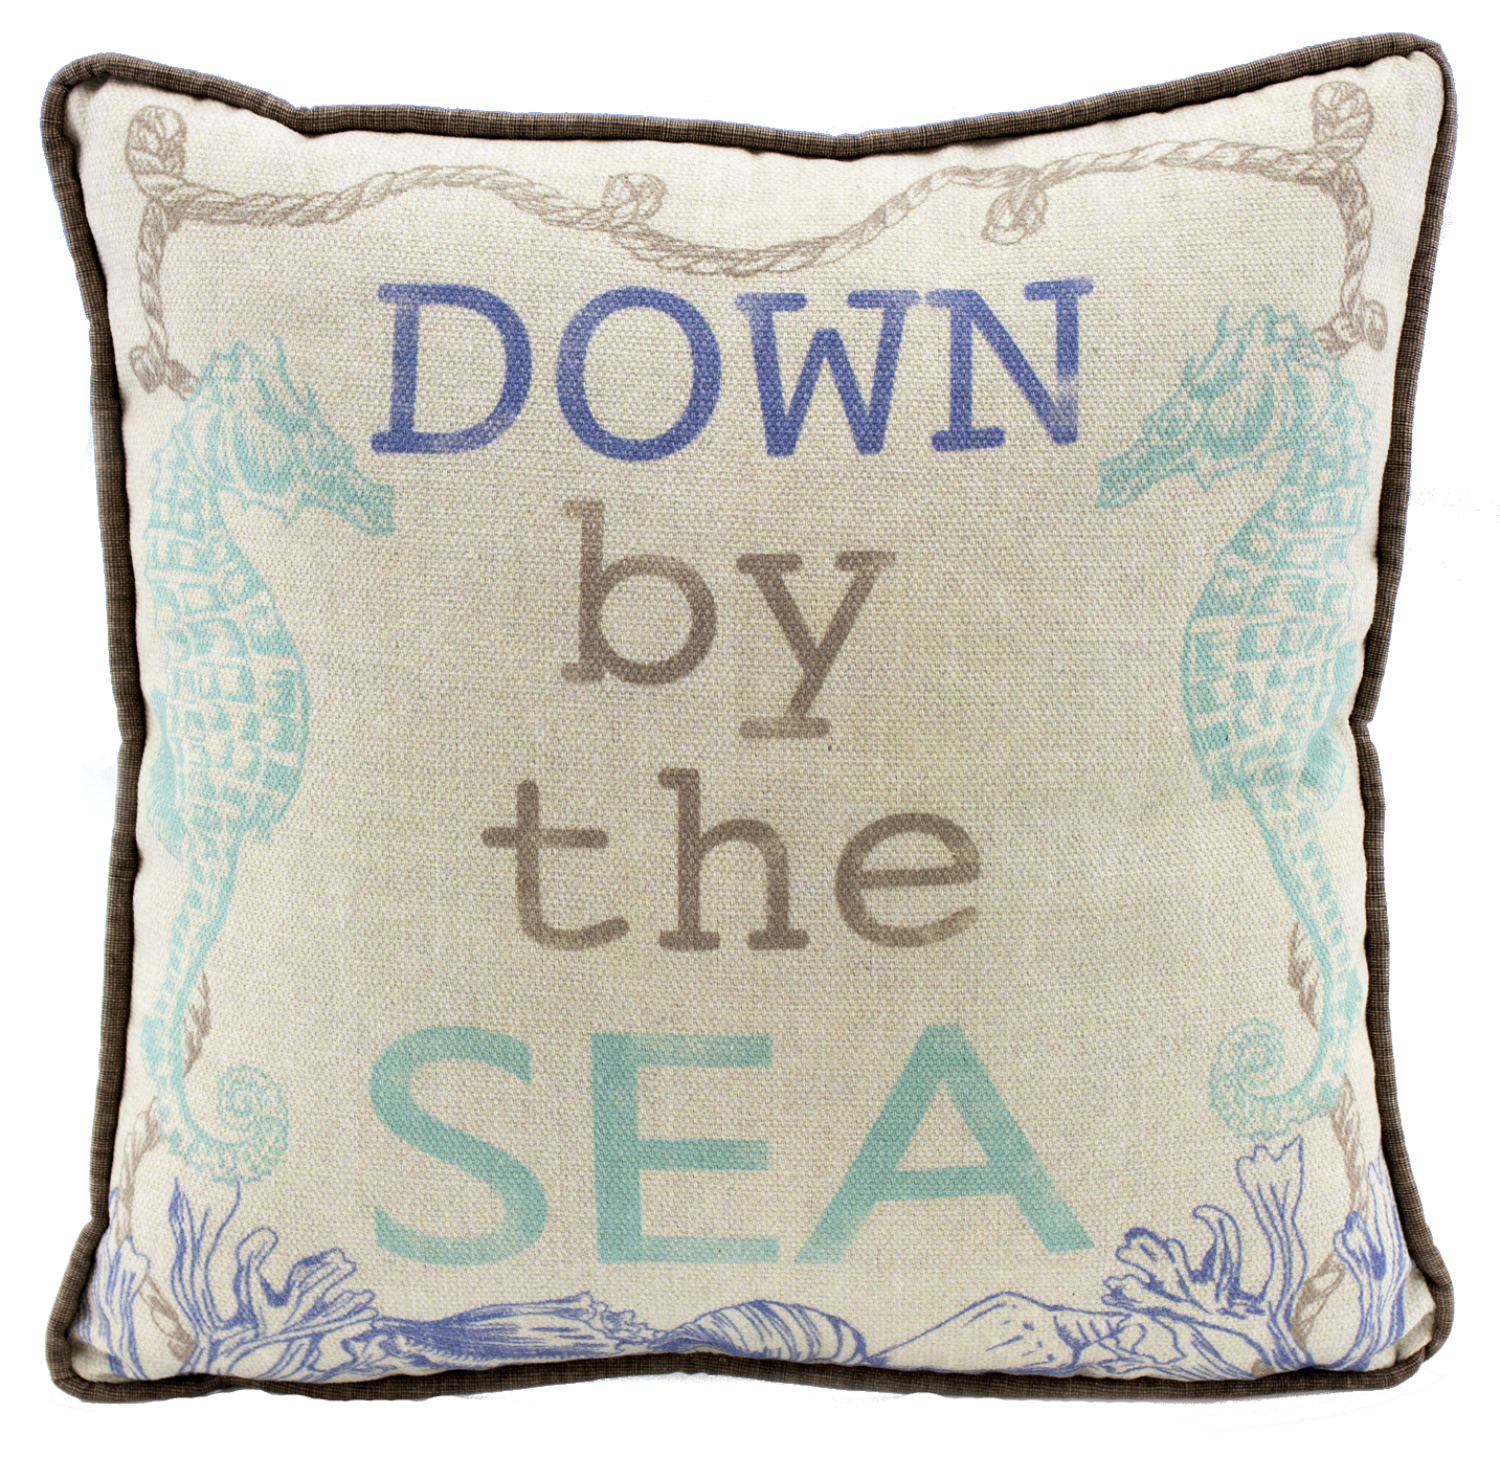 Nautical Seahorses Down By The Sea Decorative Accent Pillow 12 Inch